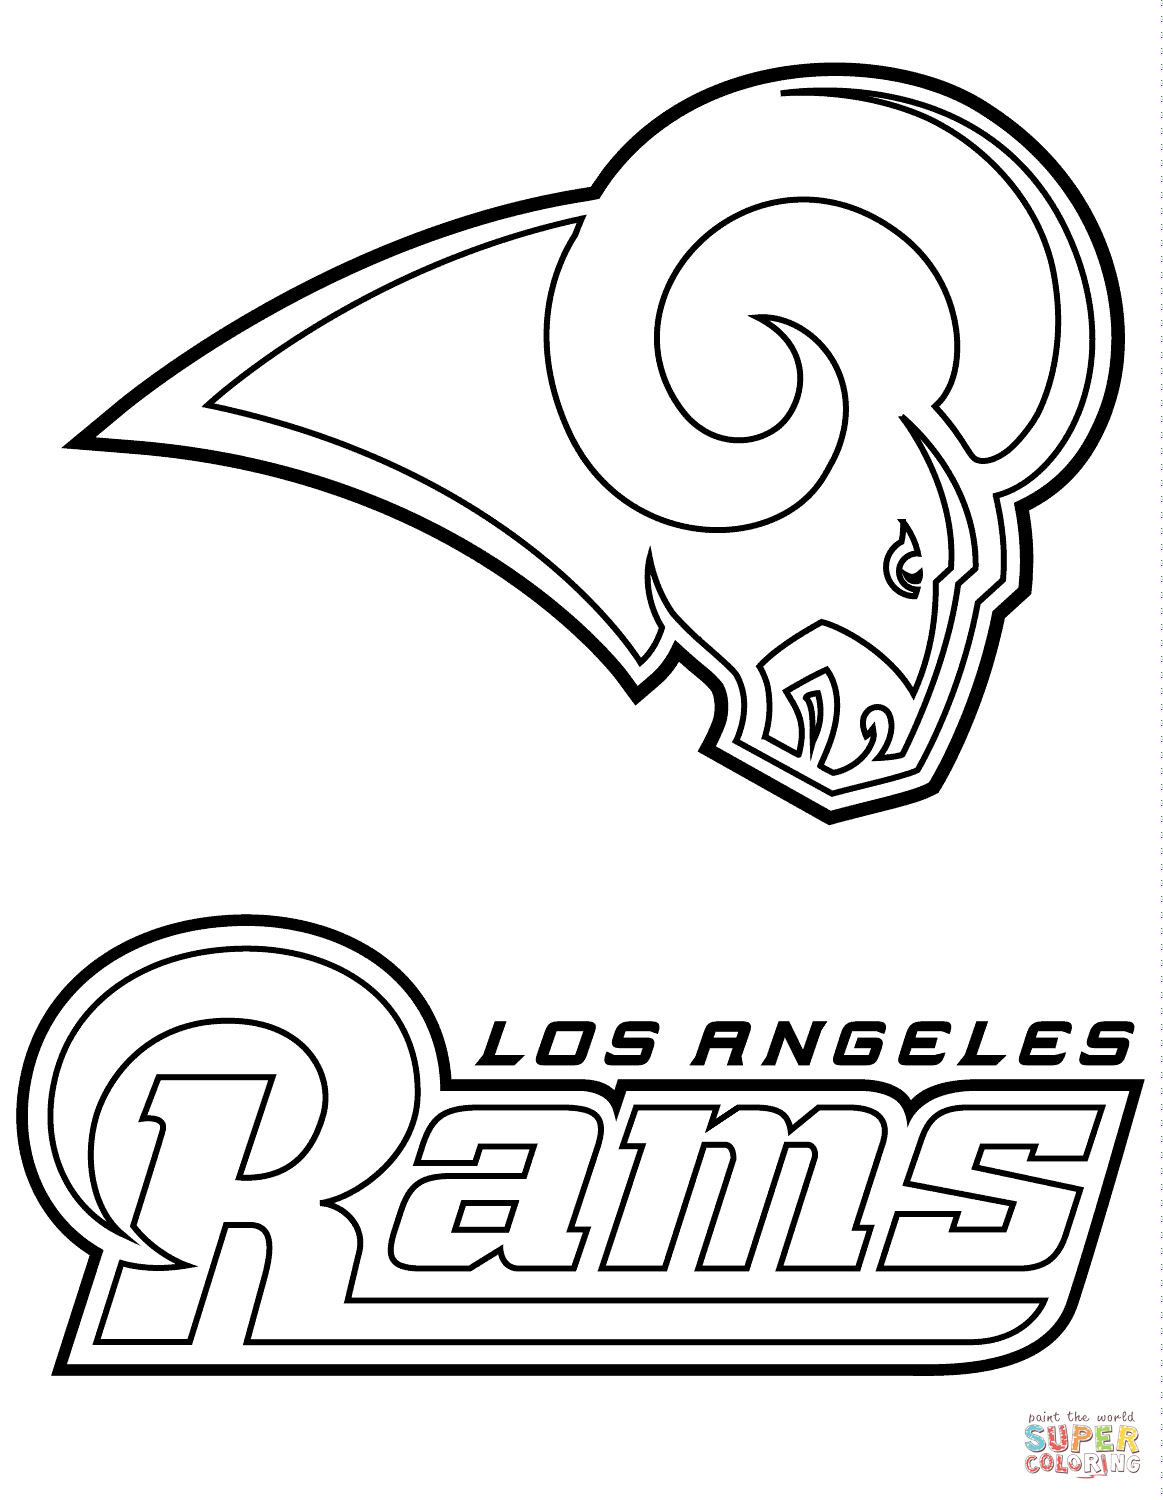 Los Angeles Rams Logo Coloring Page Free Printable Coloring Pages Los Angeles Rams Logo Football Coloring Pages Coloring Pages